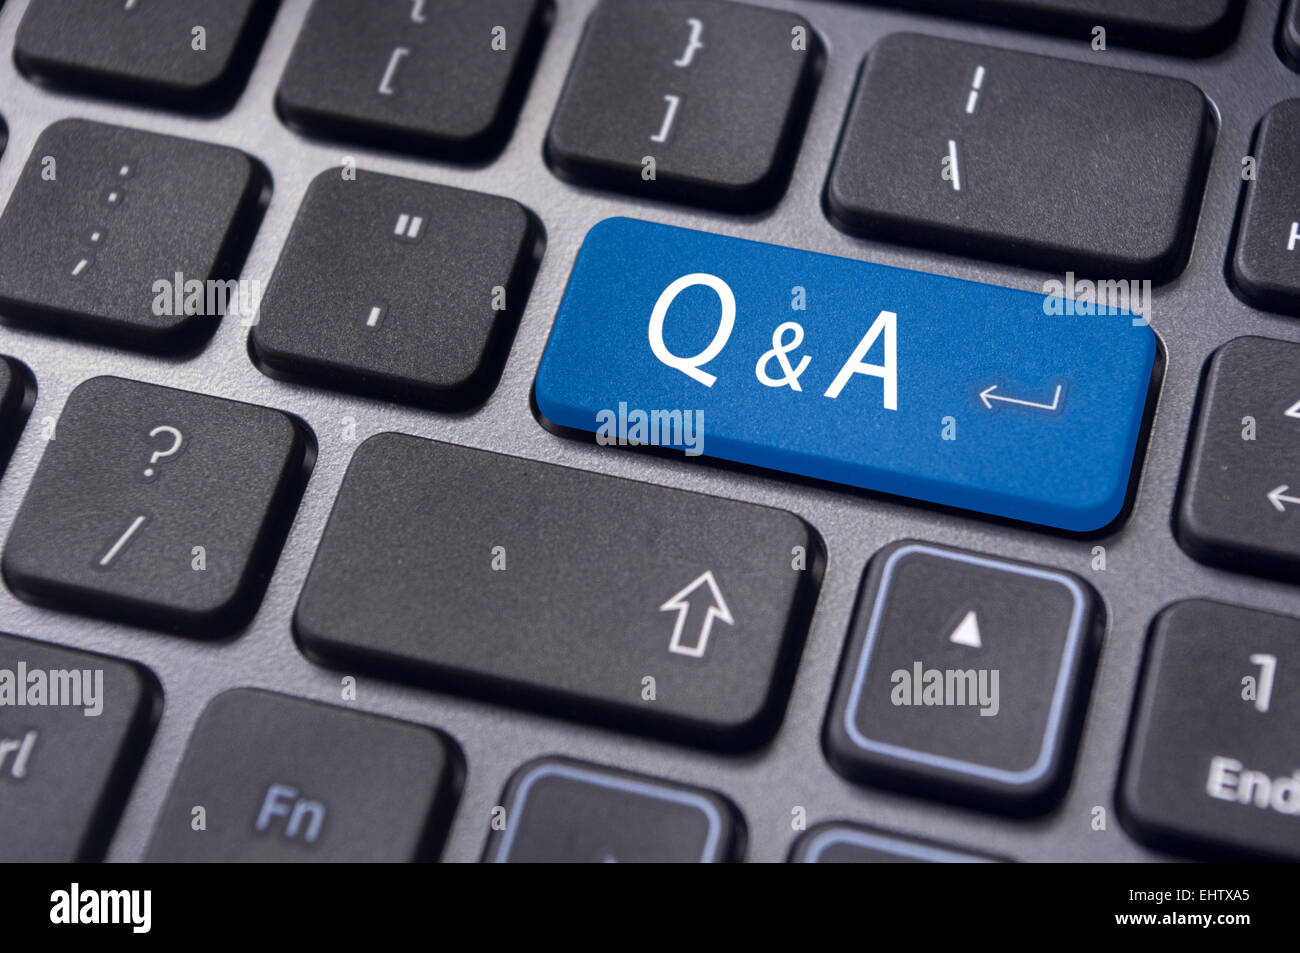 qa questions and answers concepts stock photo royalty image qa questions and answers concepts